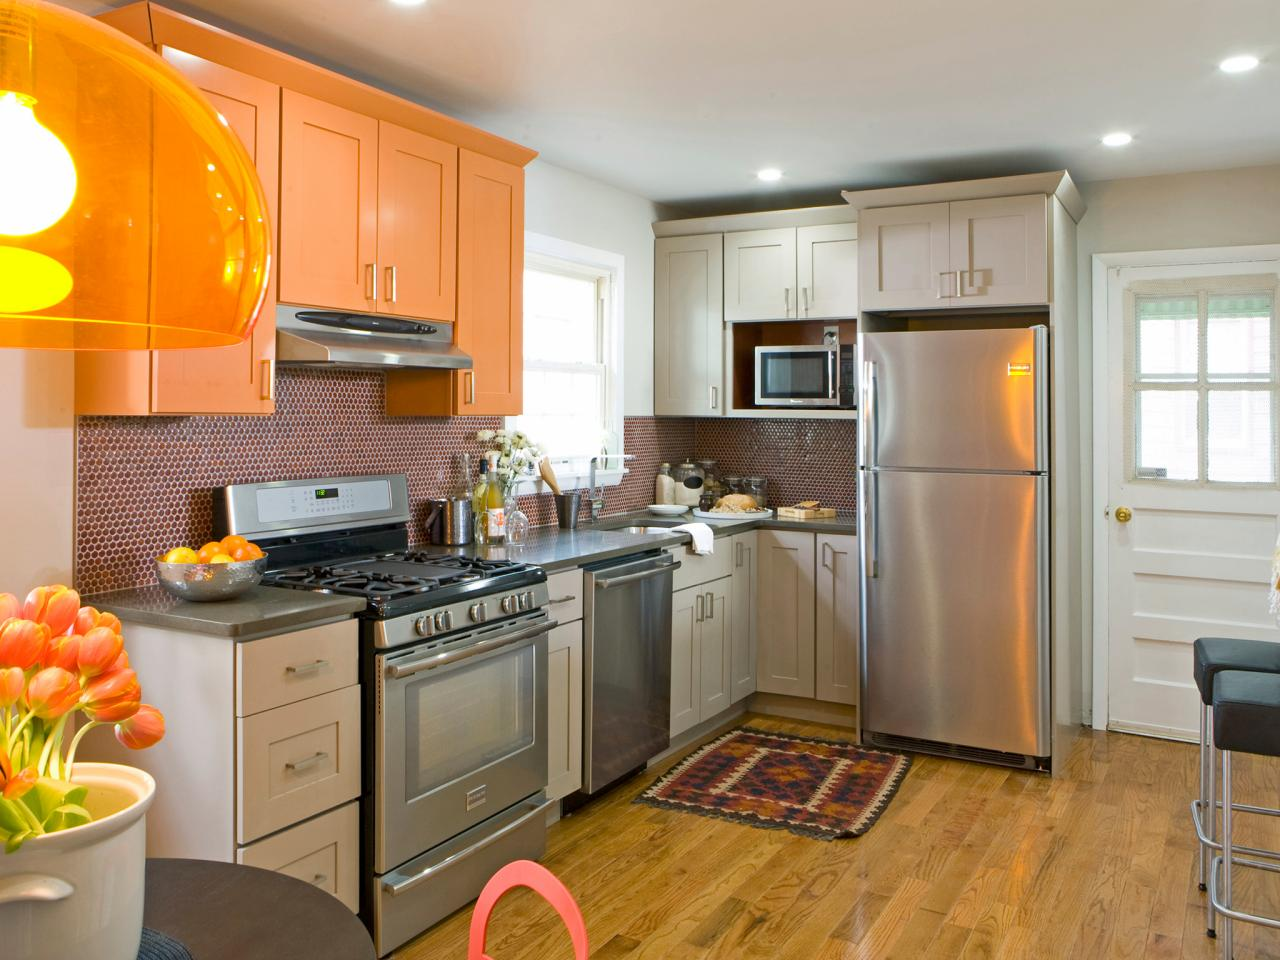 consider painting kitchen cabinet following trend then neutral colors